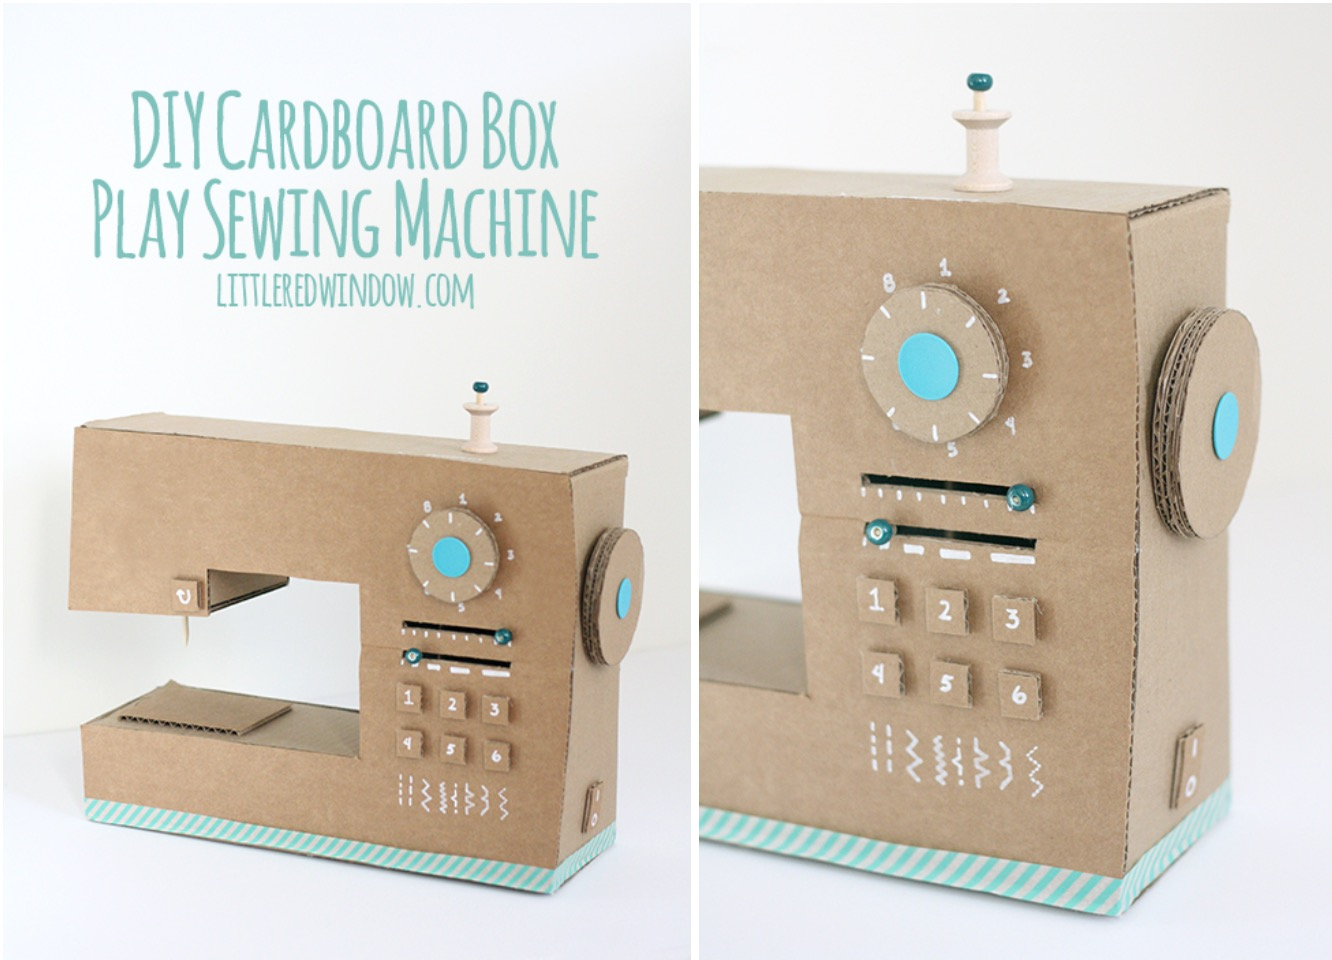 Cardboard Sewing Machine